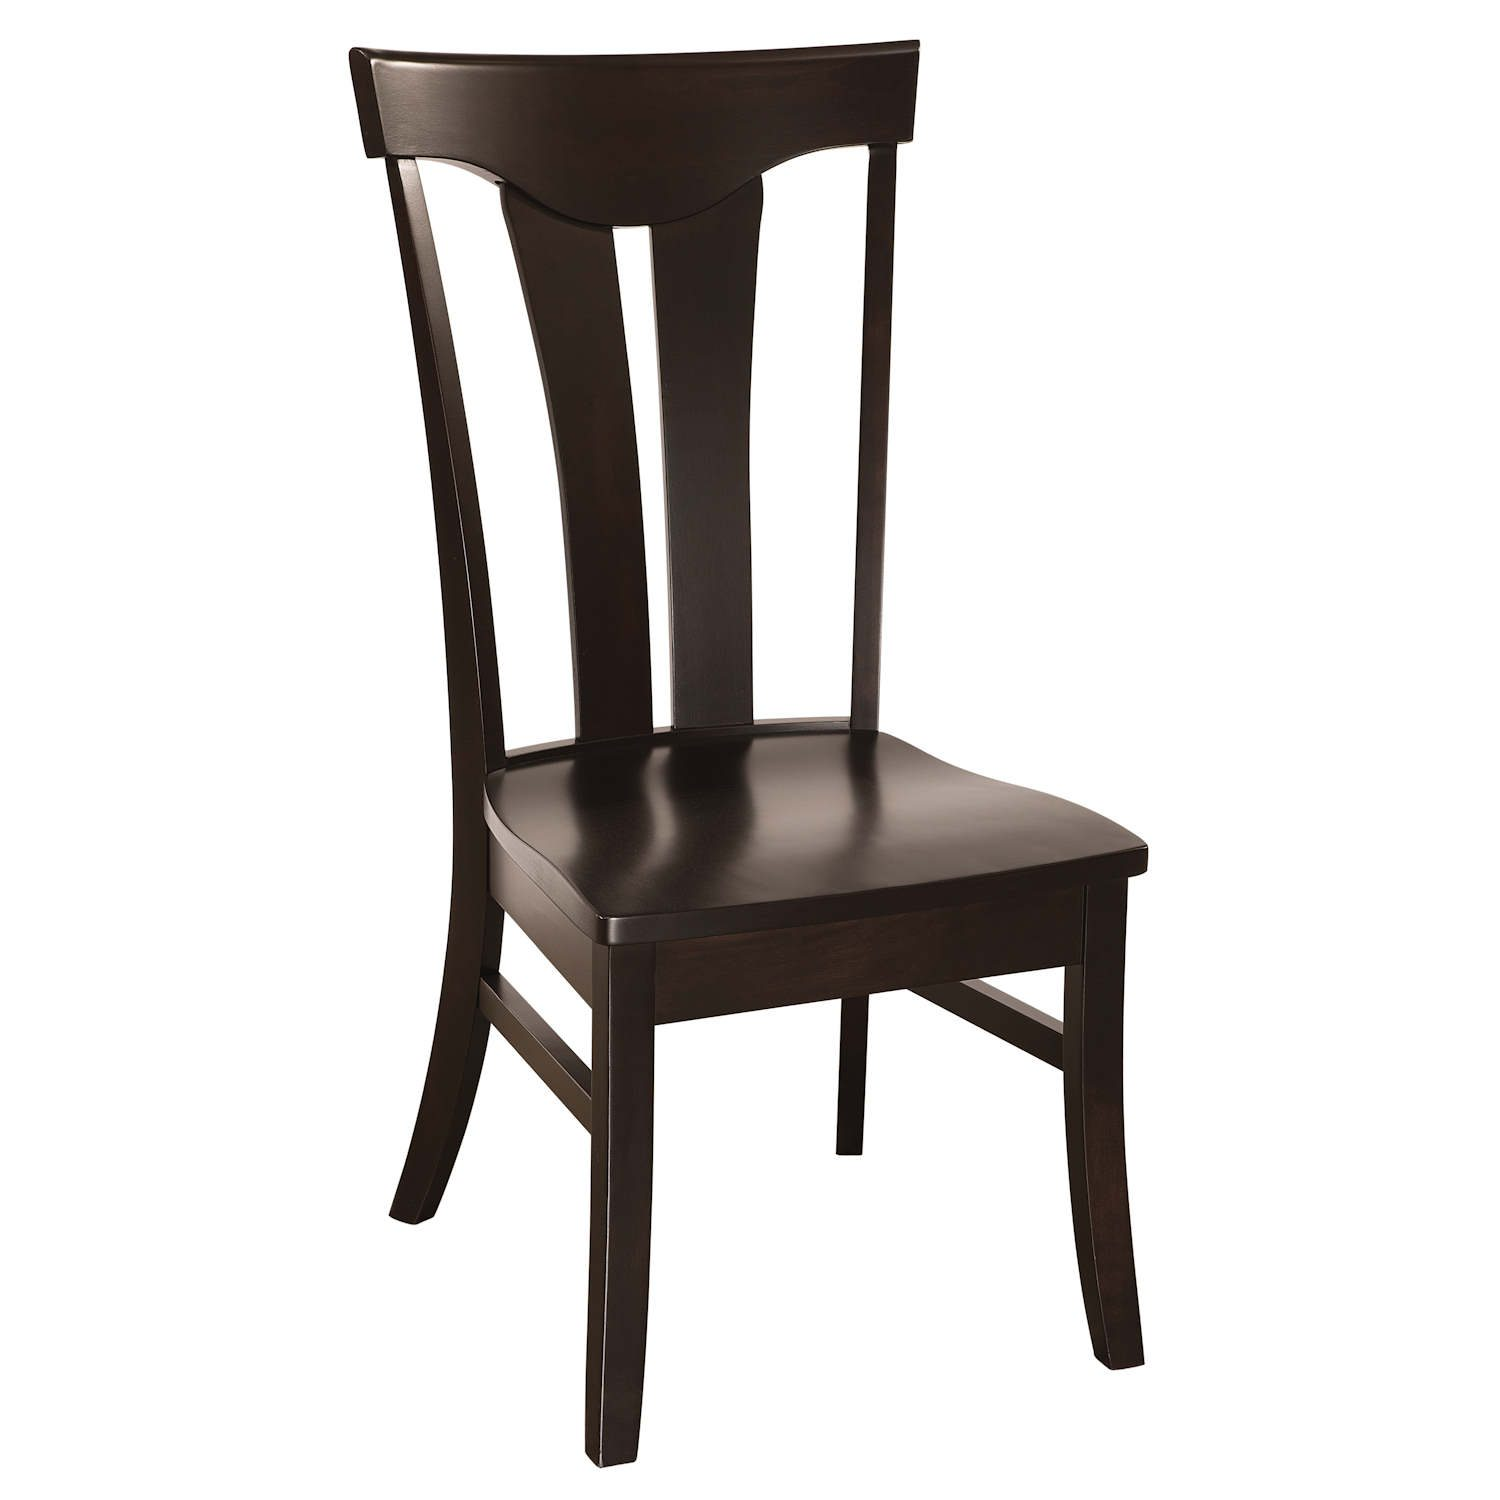 Tifton Wood Dining Room Chairs